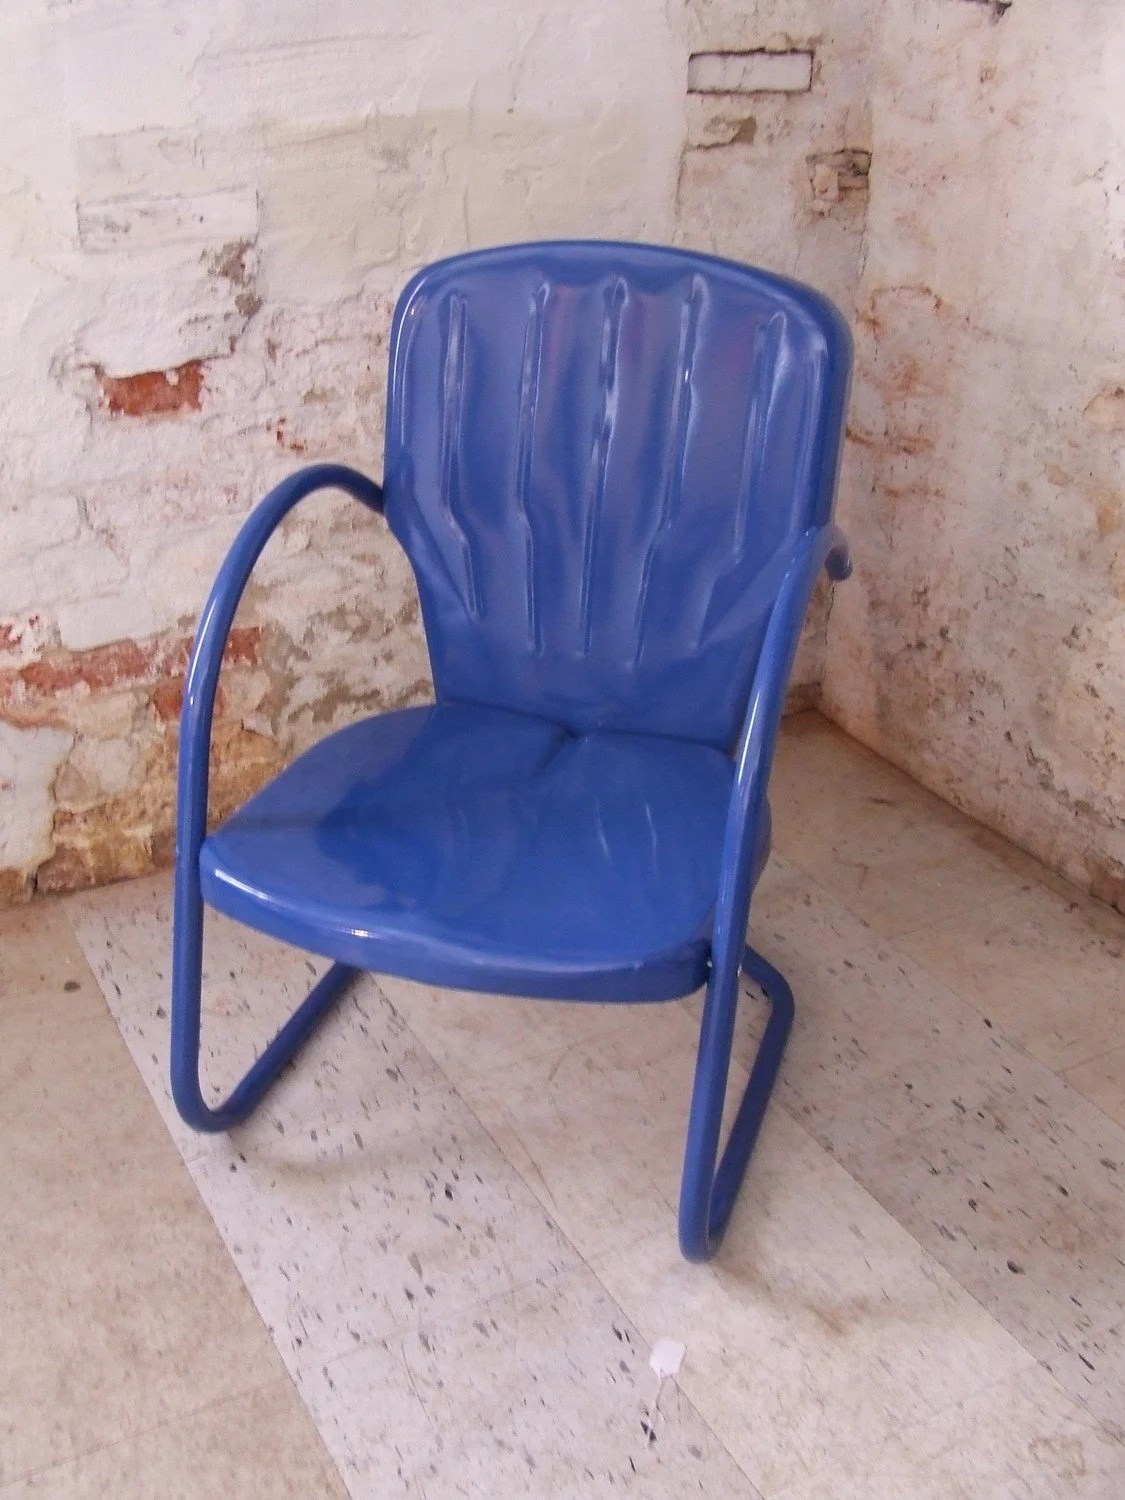 Royal Blue Vintage Metal Shell Back Lawn Chair Outdoor Chair